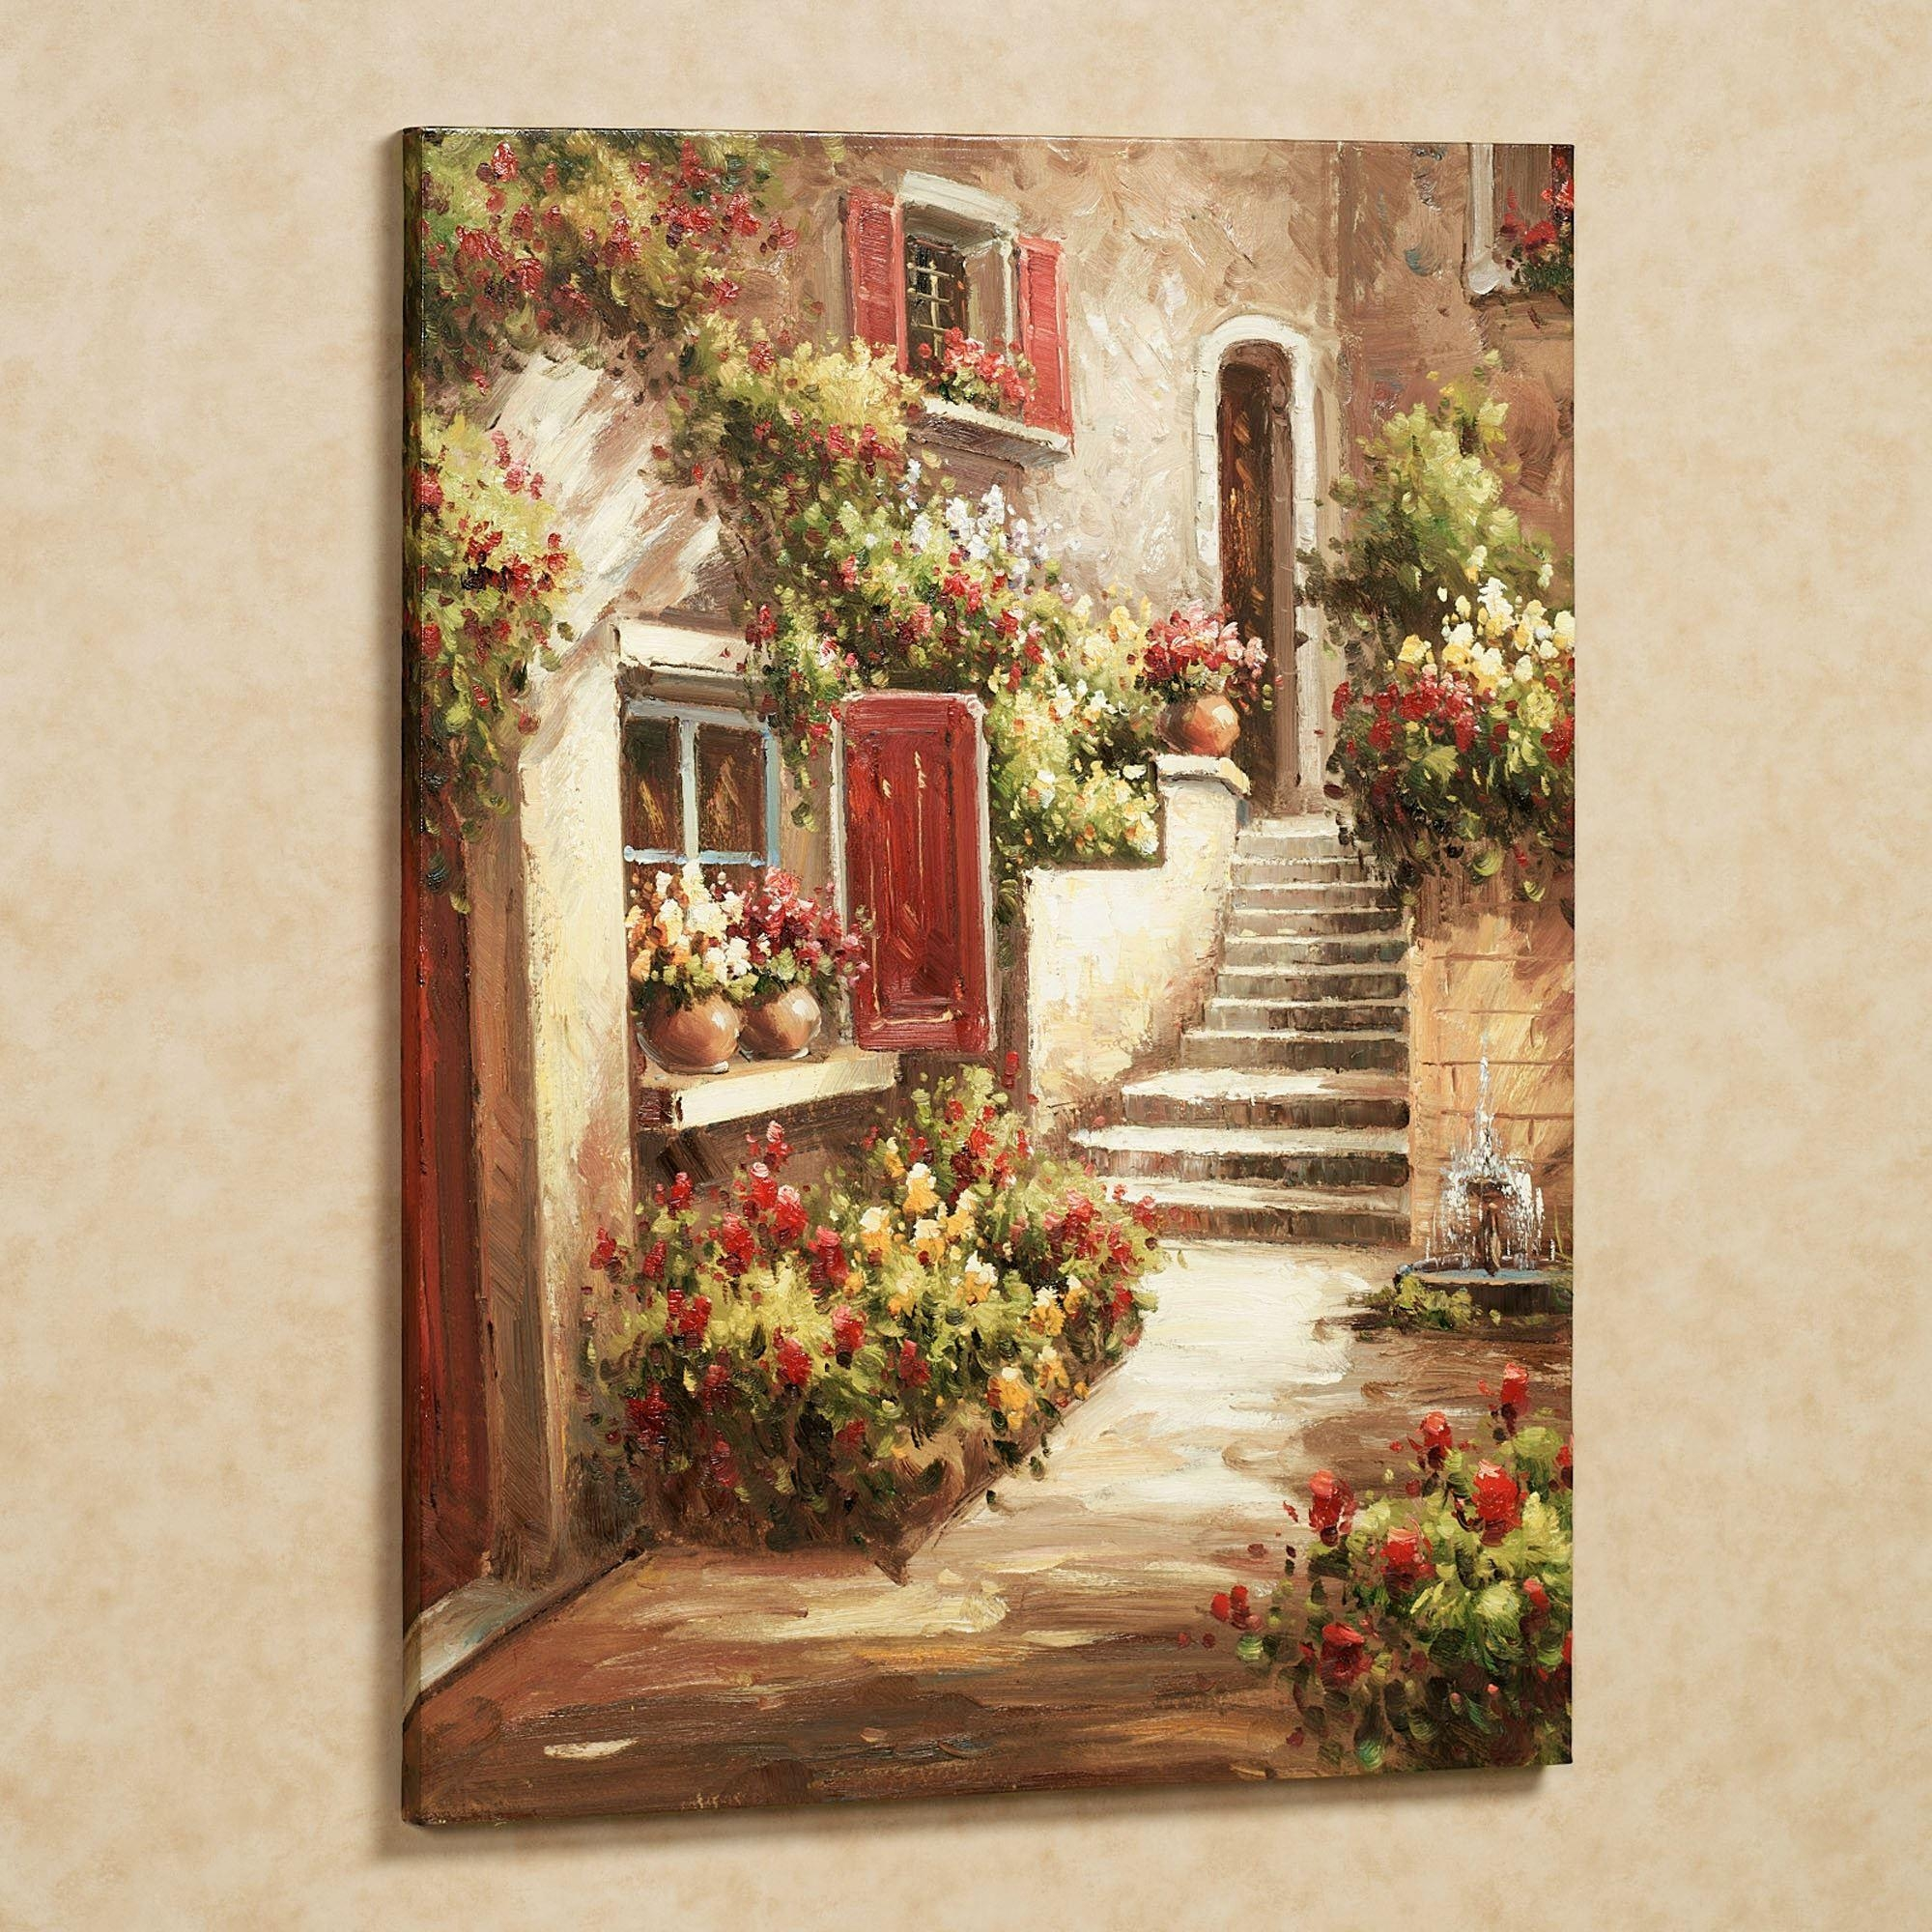 Italian Wall Decor For Kitchens Photo – Home Furniture Ideas Intended For Scattered Italian Plates Wall Art (View 5 of 20)